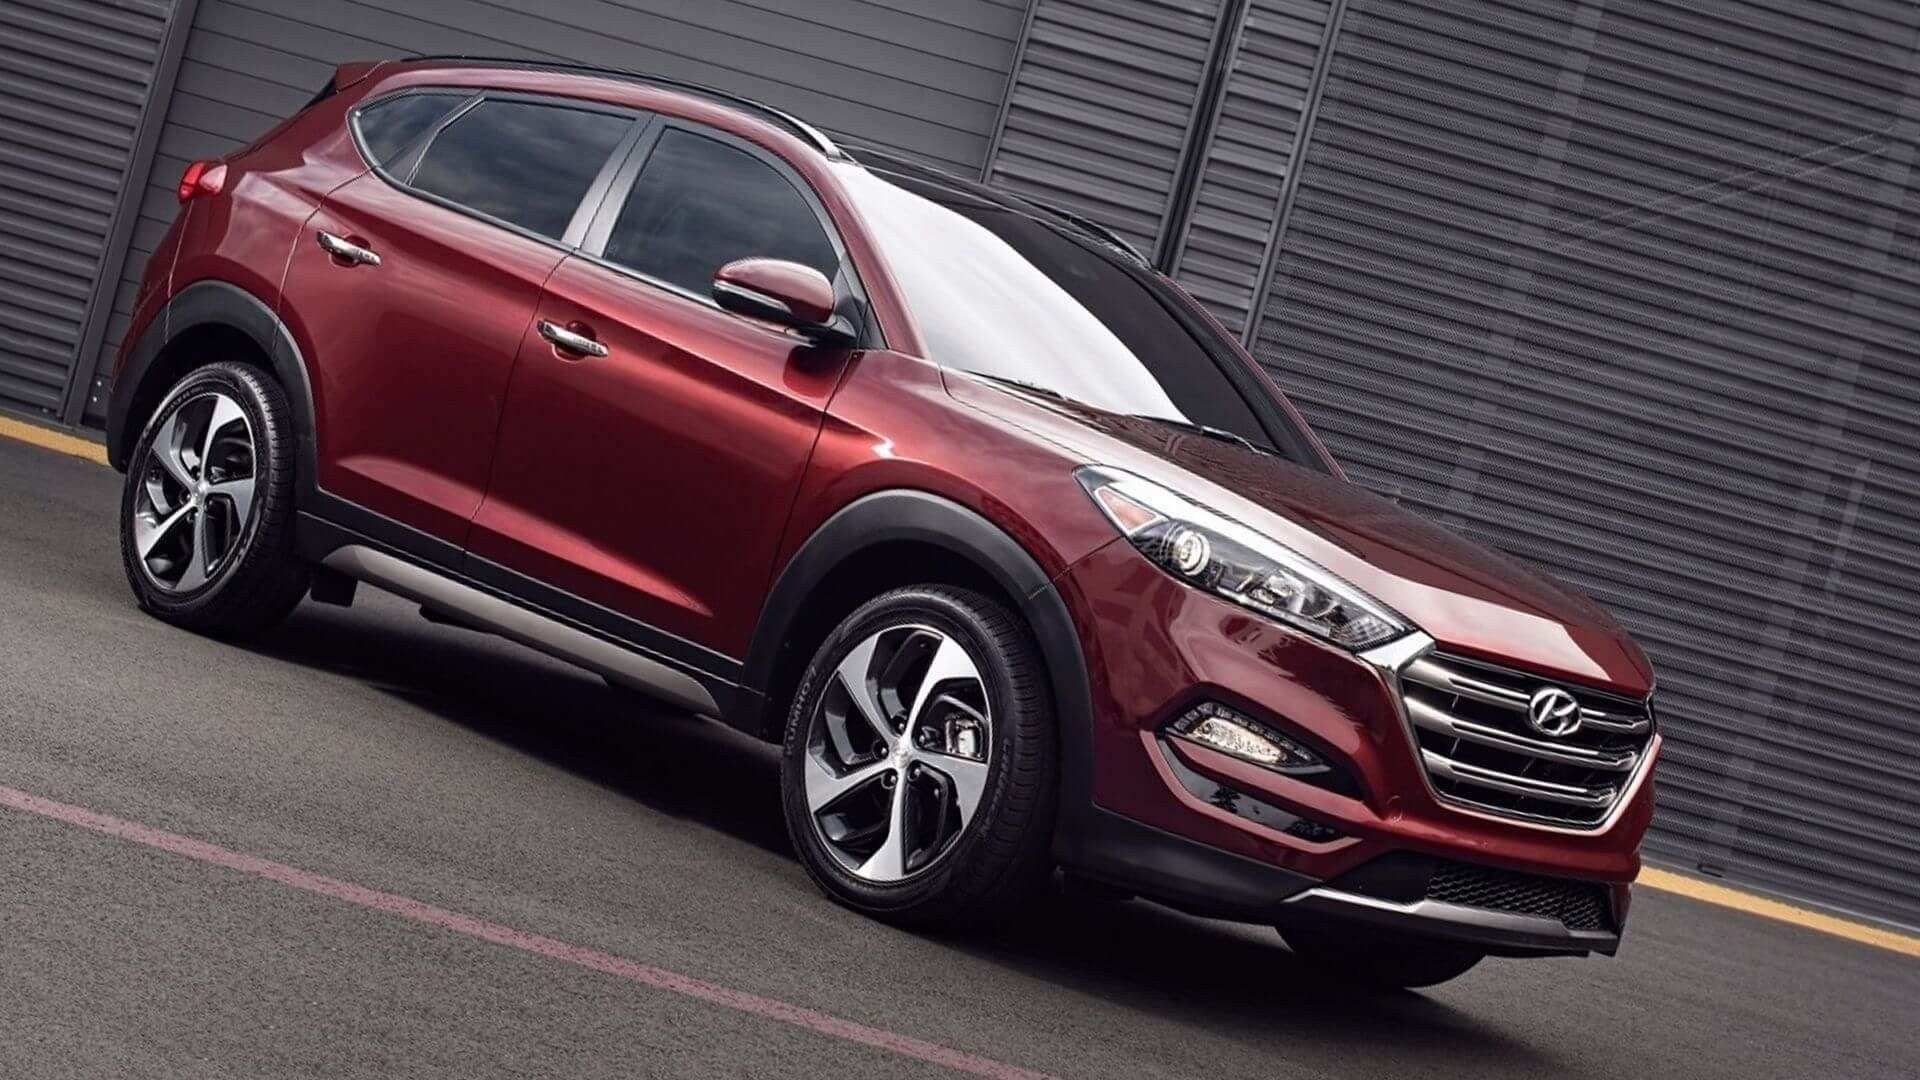 14 Best Hyundai Tucson 2020 Review Release Date